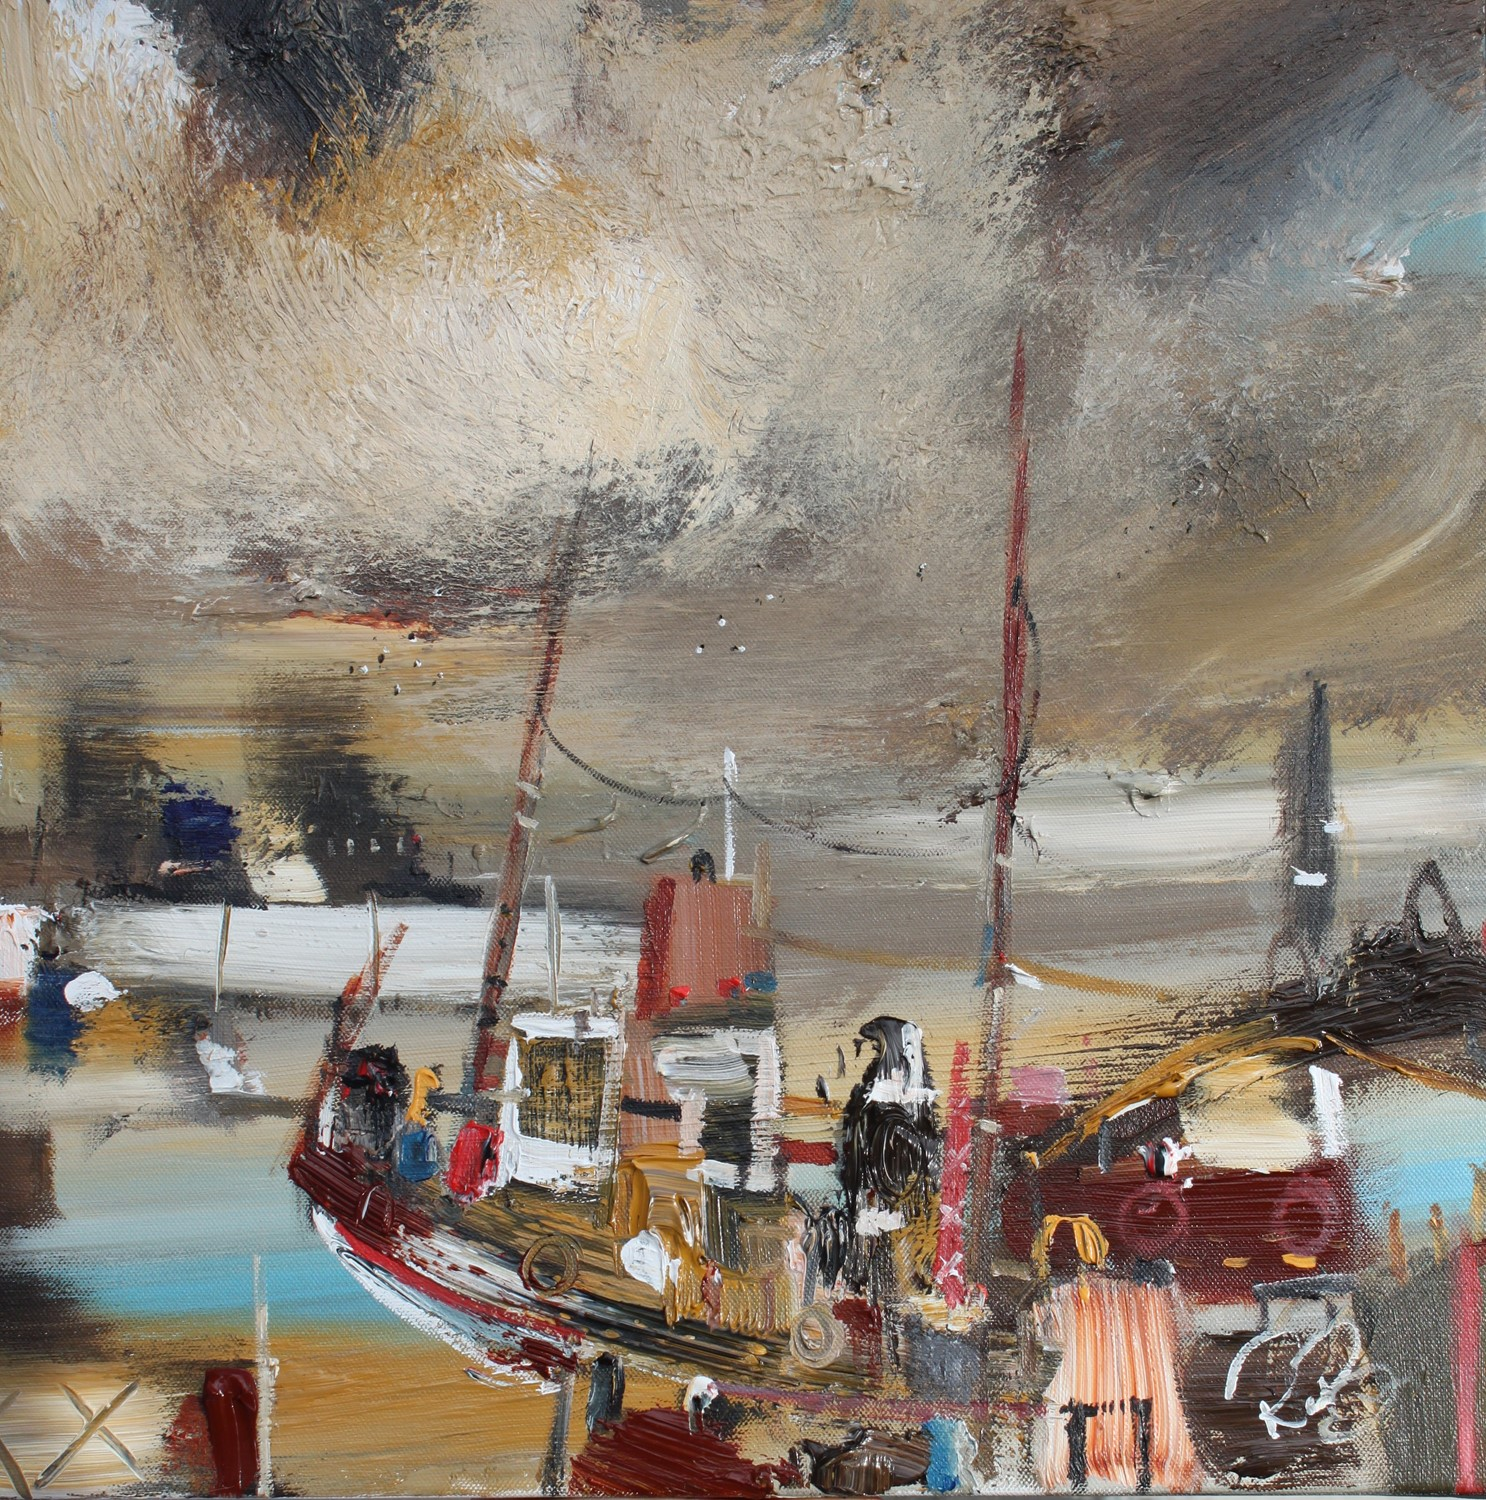 'Catch of The Day' by artist Rosanne Barr